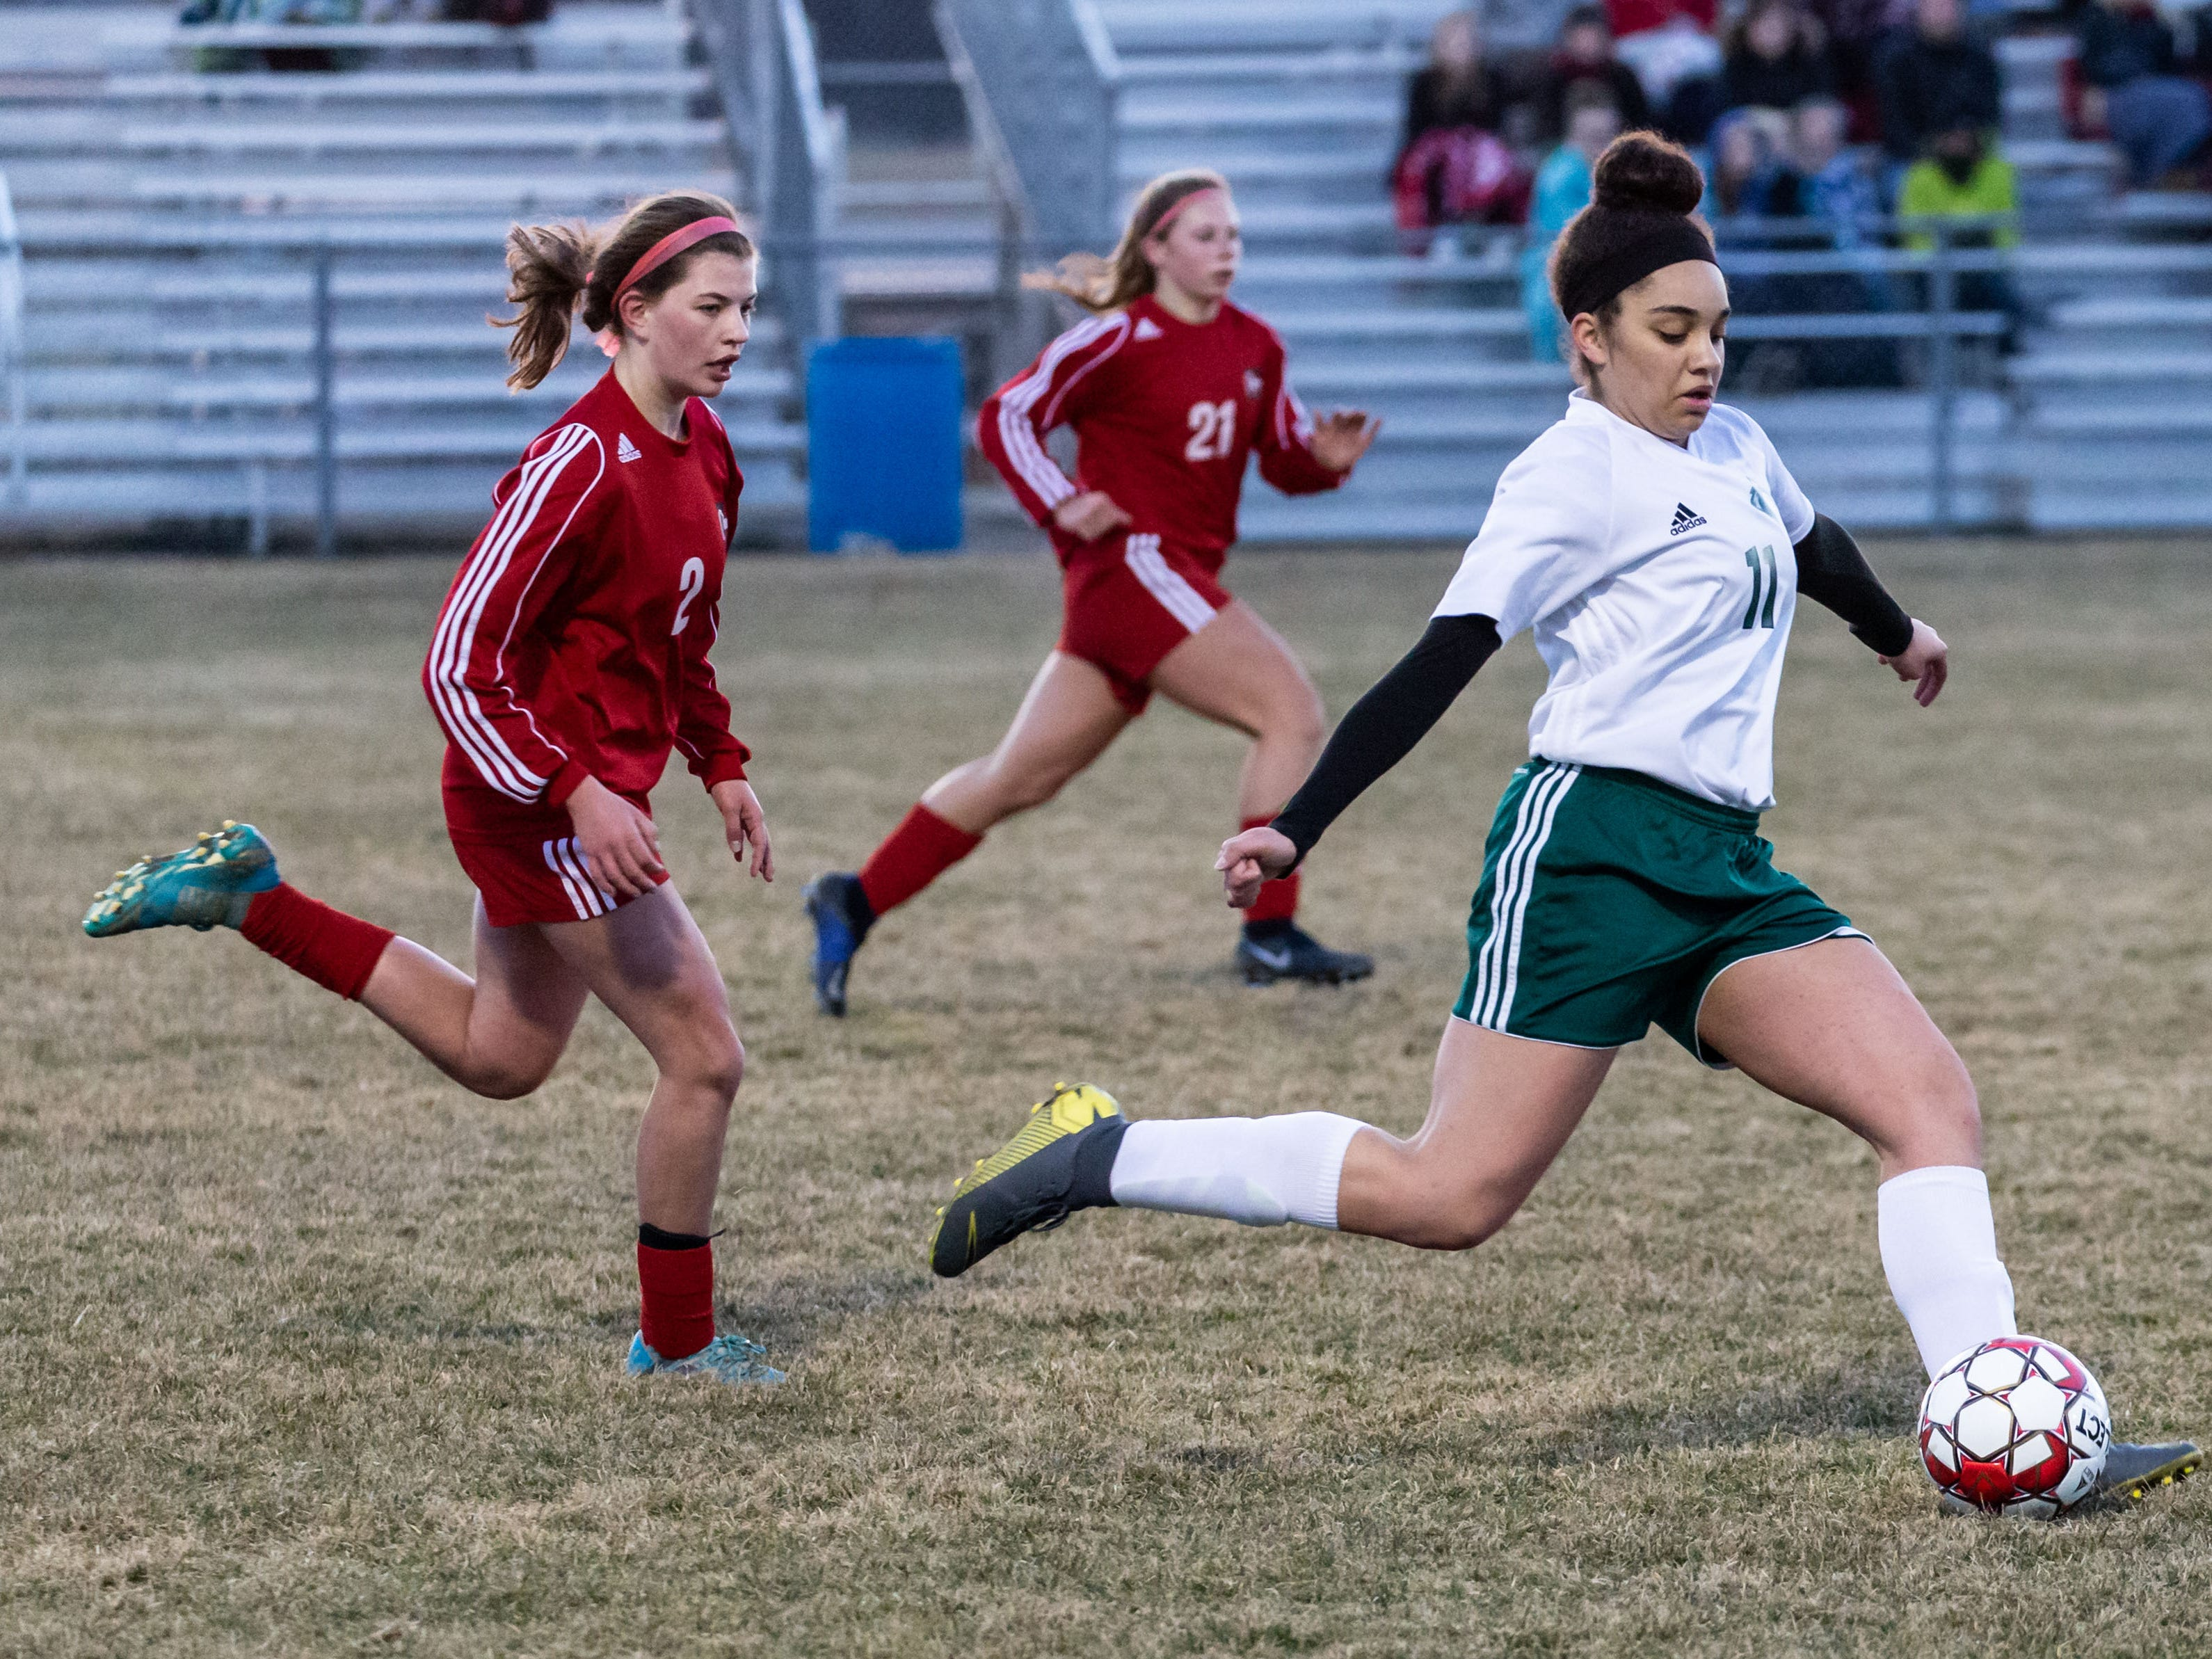 West Allis Hale's Naveah Gordon (11) sends one downfield during the game at Hamilton on Tuesday, April 2, 2019.